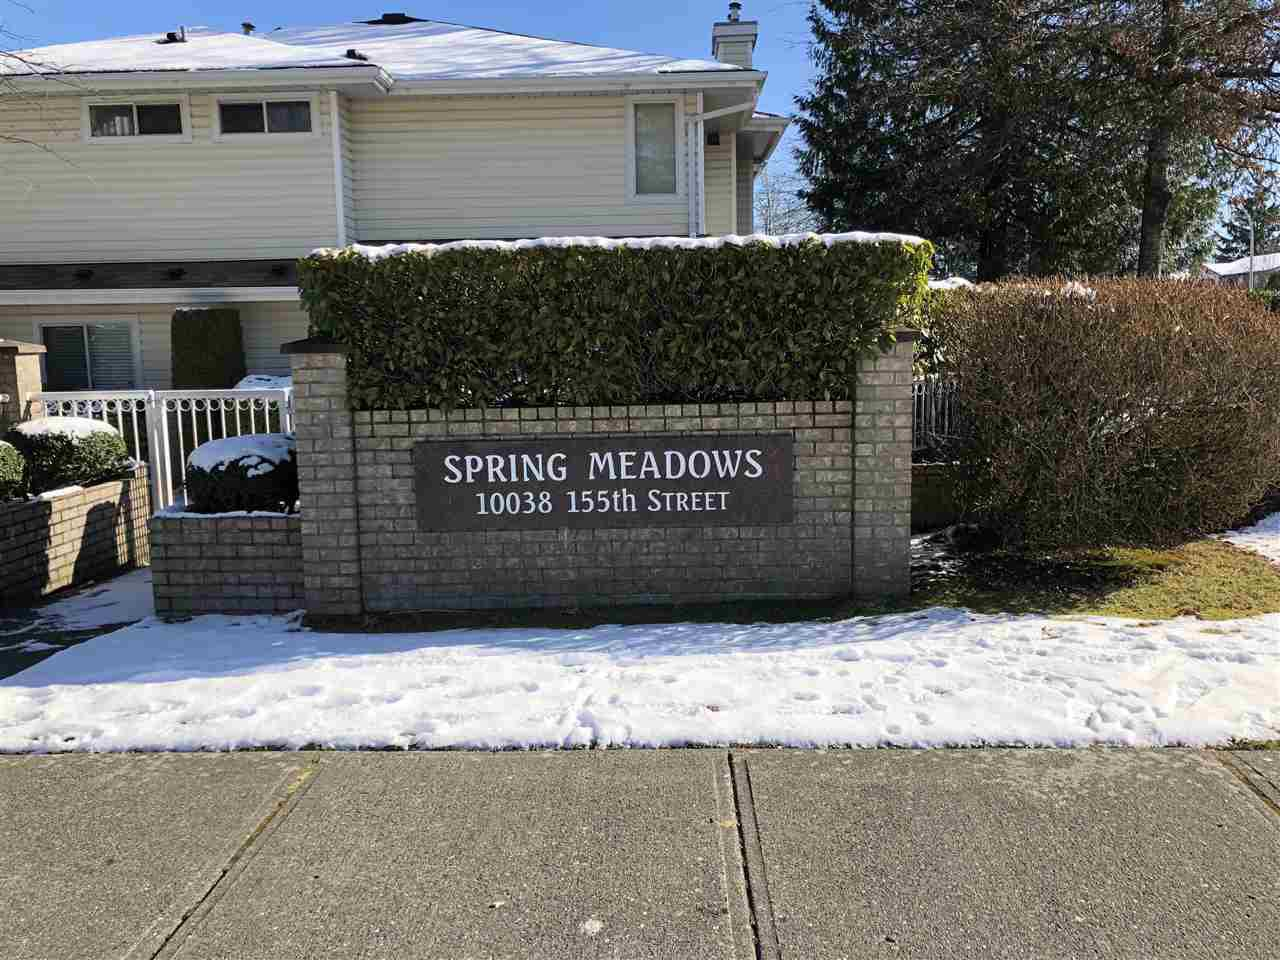 "Main Photo: 54 10038 155 Street in Surrey: Guildford Townhouse for sale in ""SPRING MEADOWS"" (North Surrey)  : MLS®# R2240810"